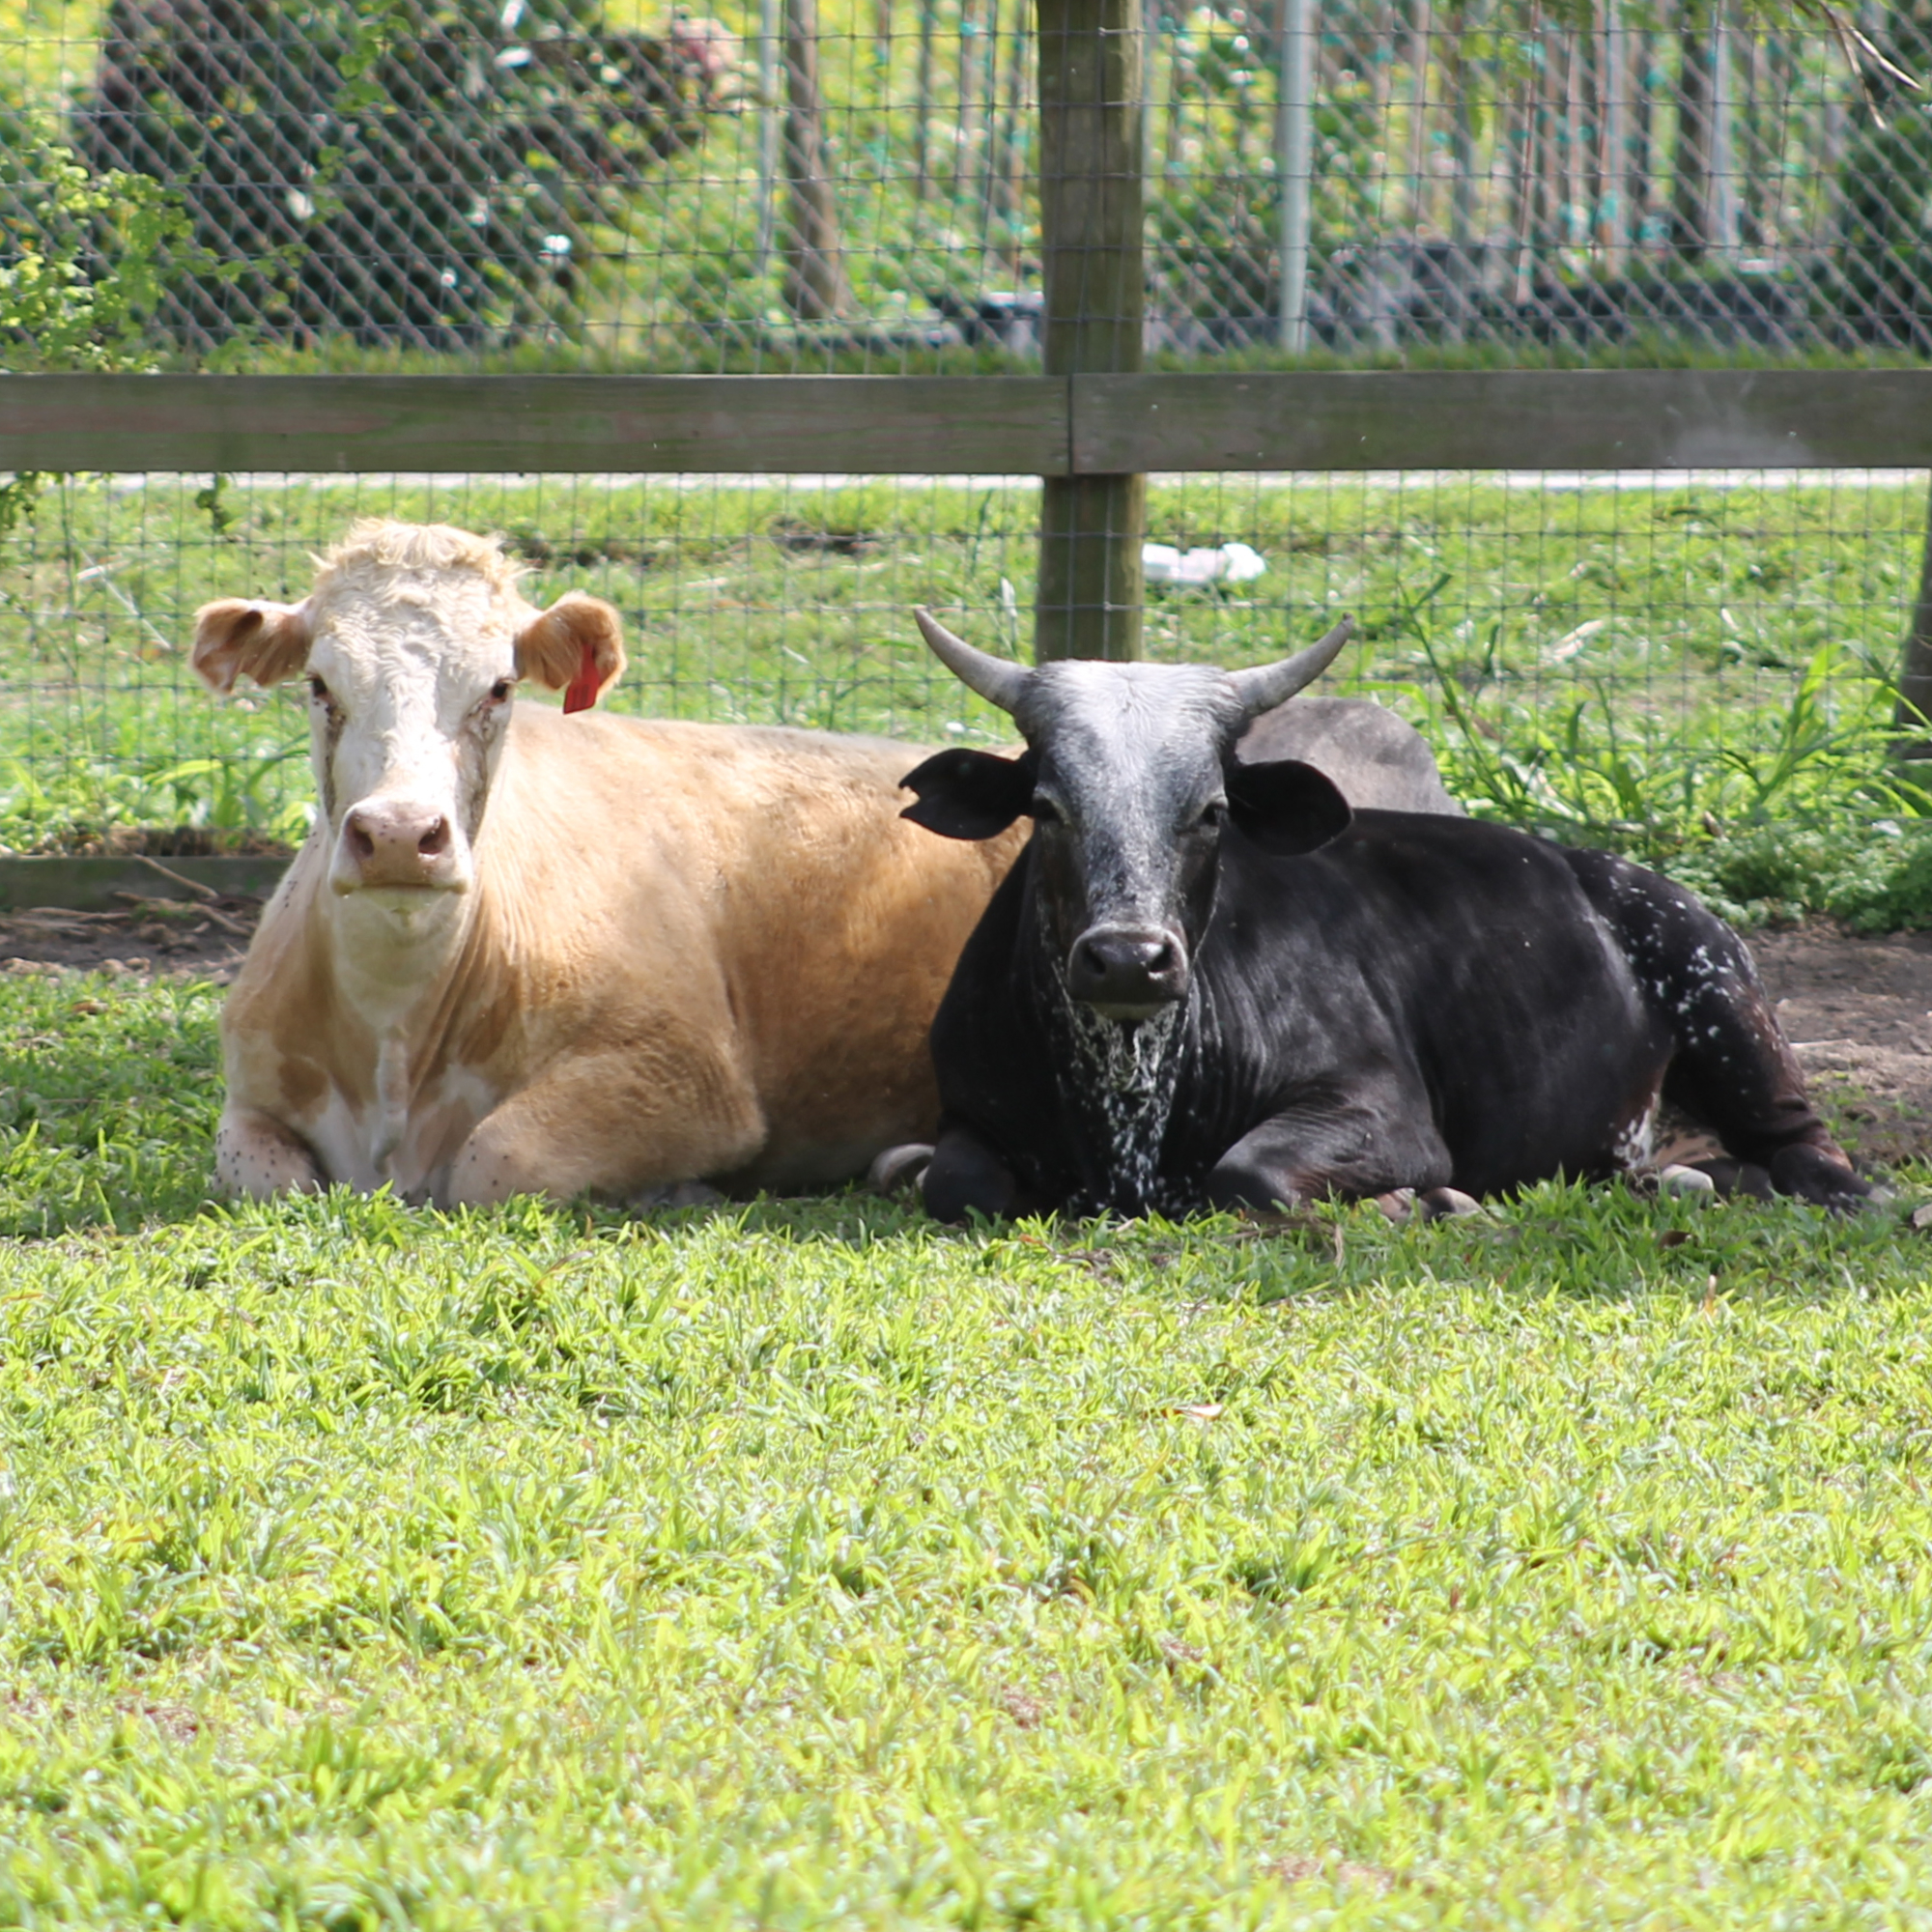 SFSPCA helps neglected and abandoned horses and other large livestock animals